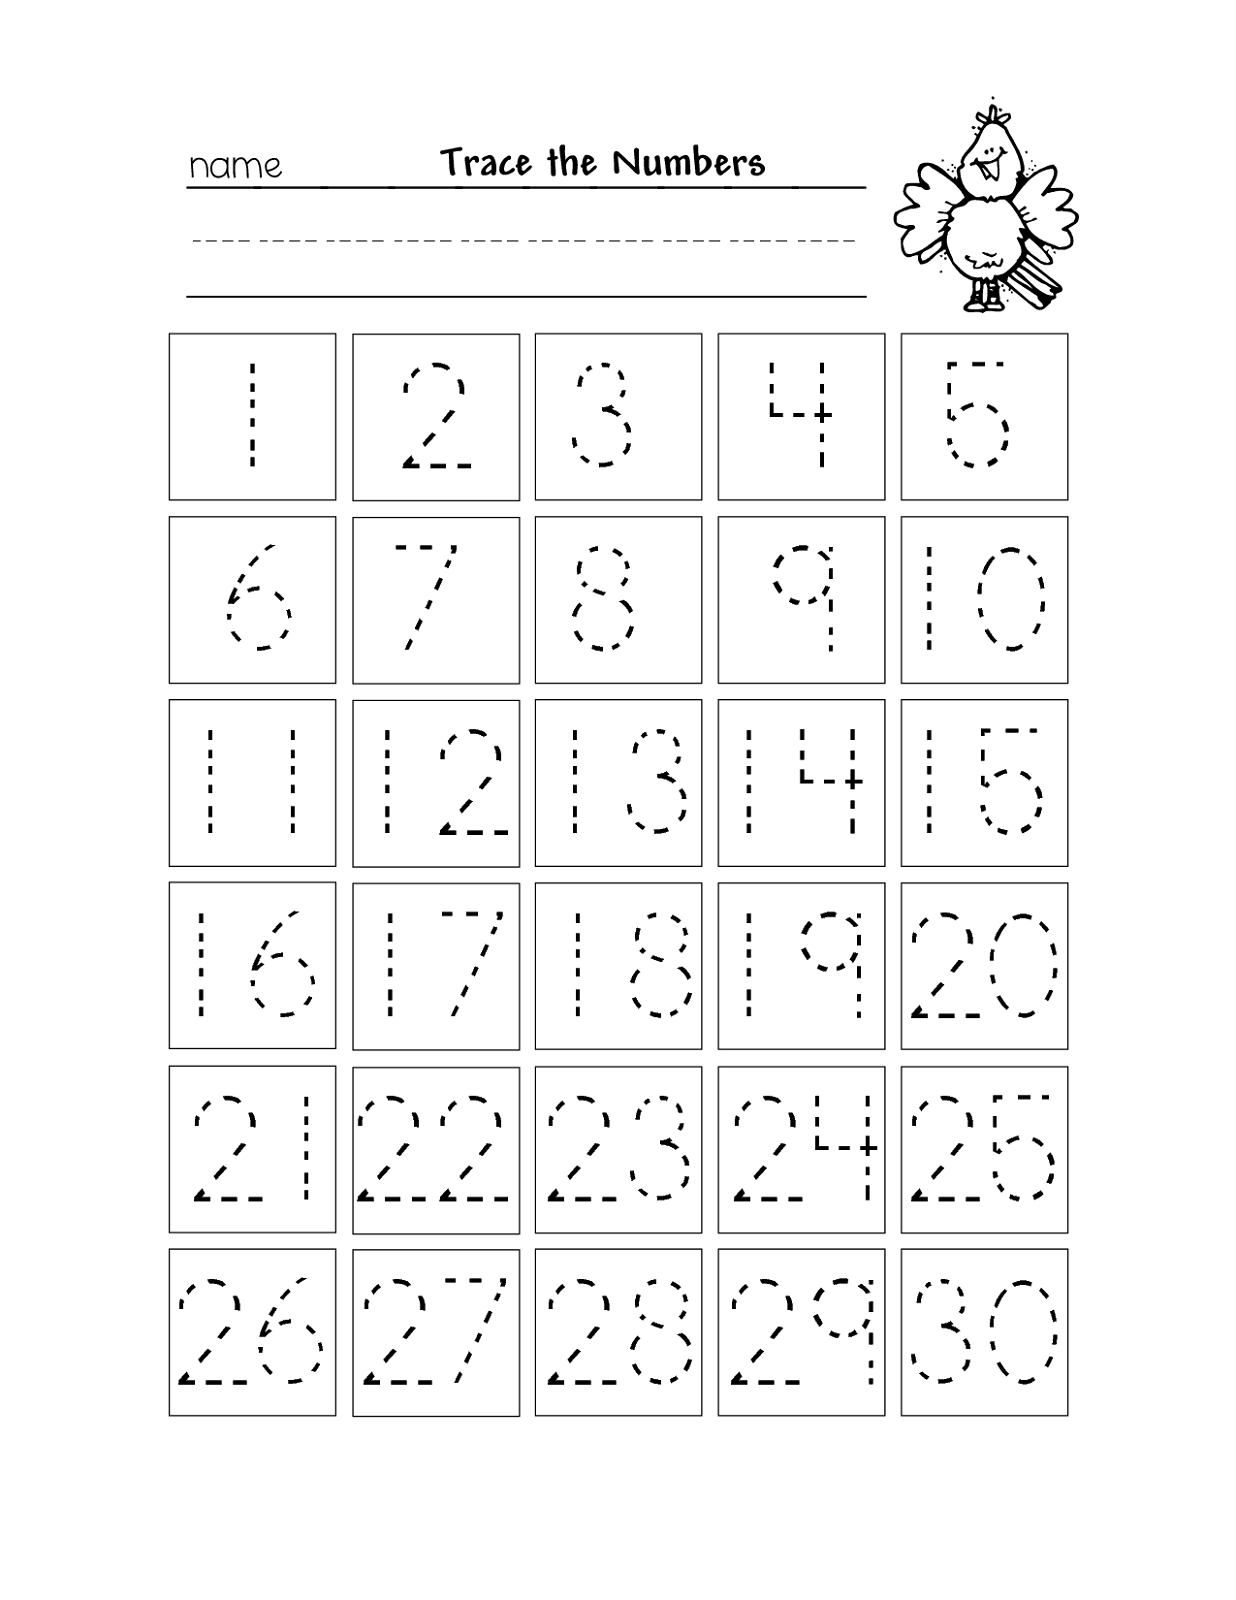 Free Printable Number Chart 1-30 | Kinder | Number Tracing - Free Printable Number Line To 30